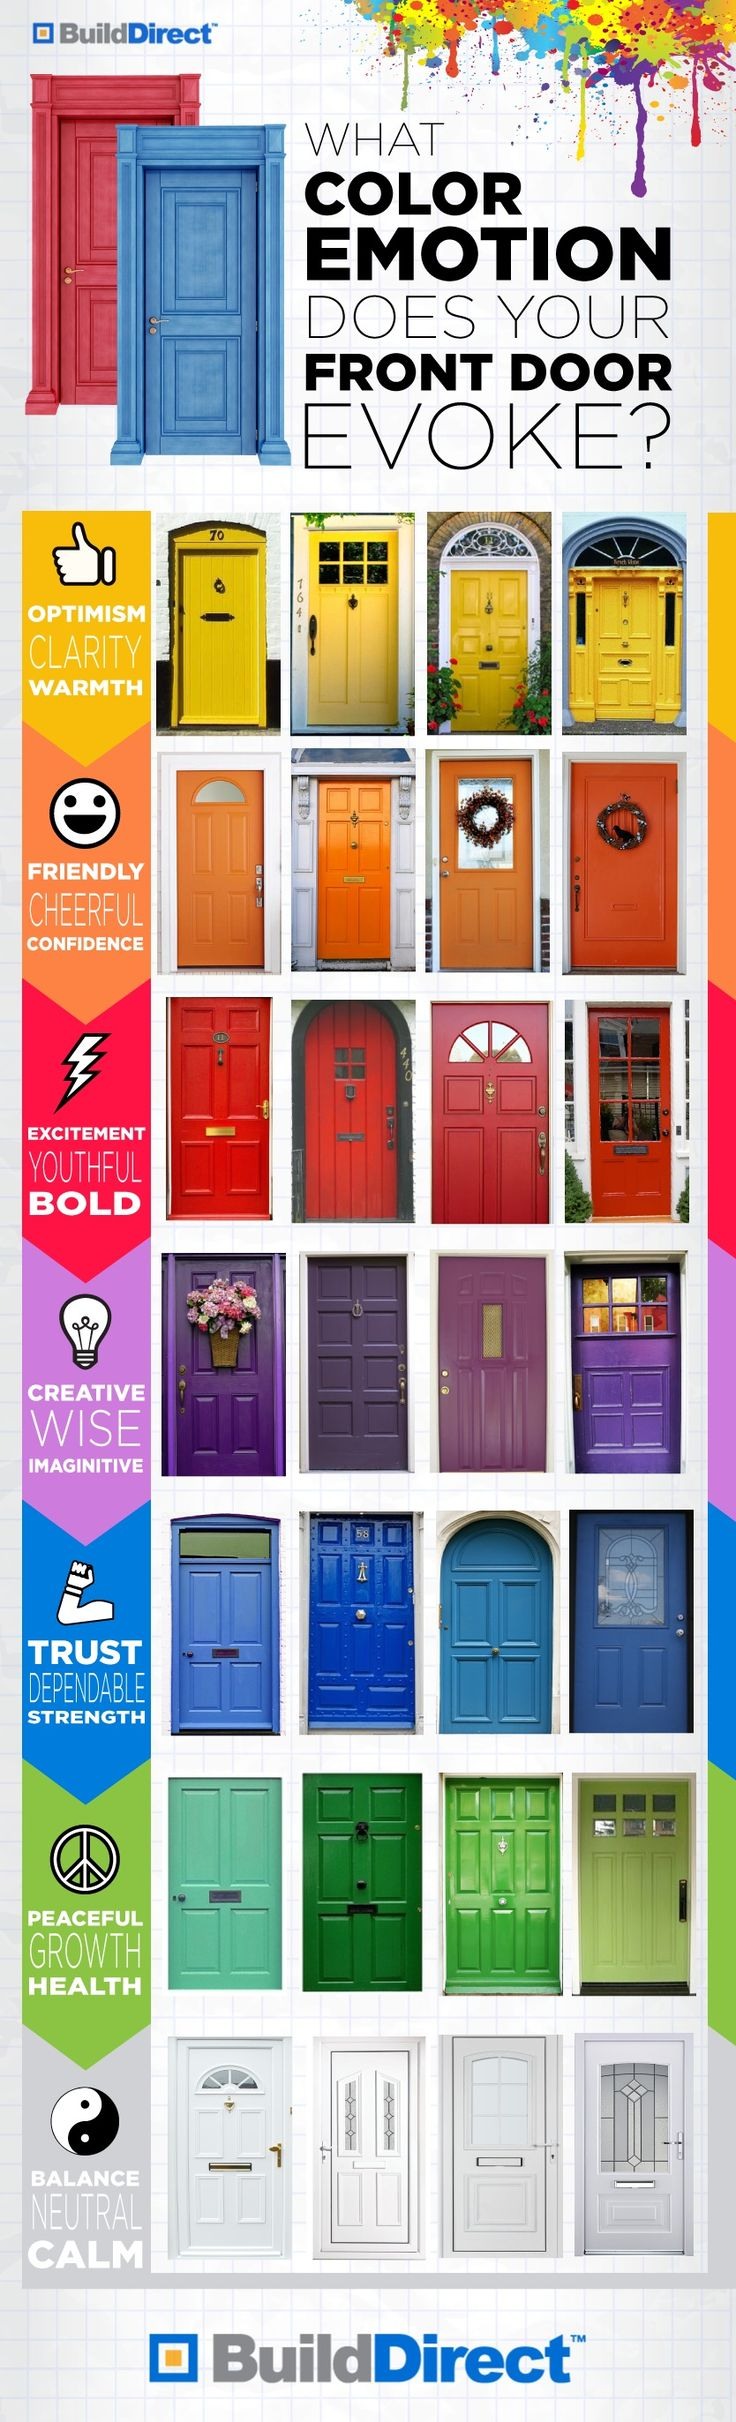 What Emotion Does Your Front Door Color Evoke?